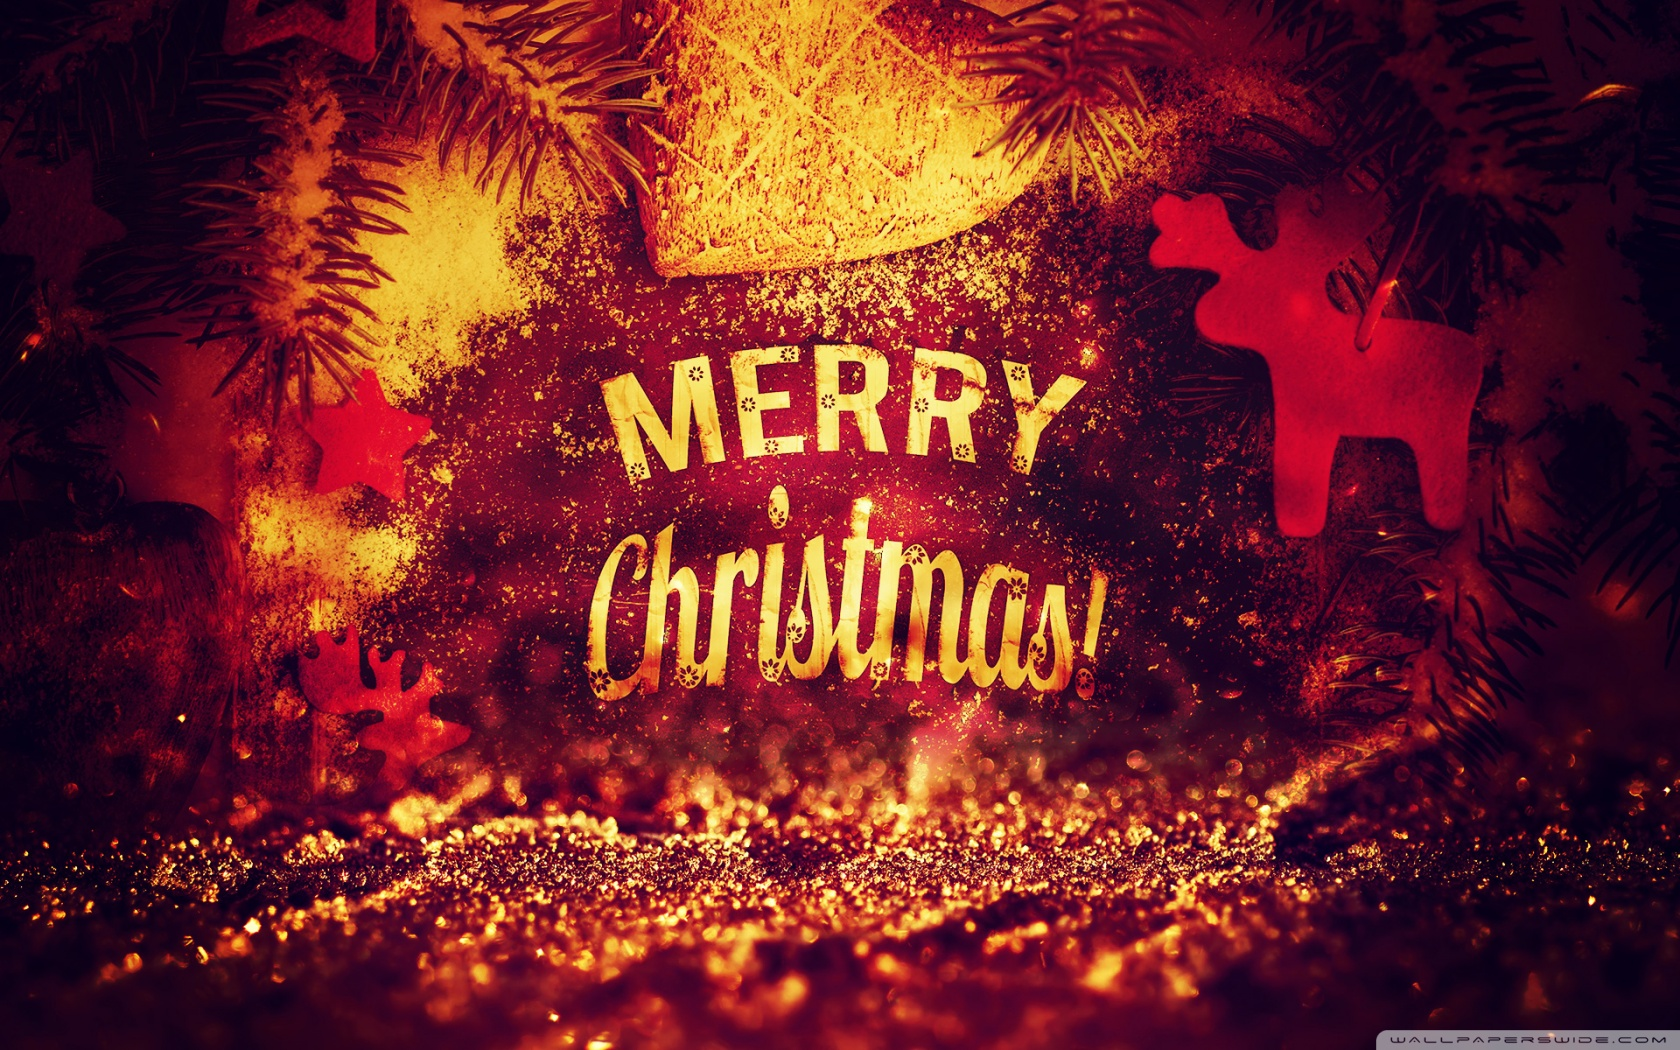 Merry Christmas 2014 by PimpYourScreen 4K HD Desktop Wallpaper 1680x1050